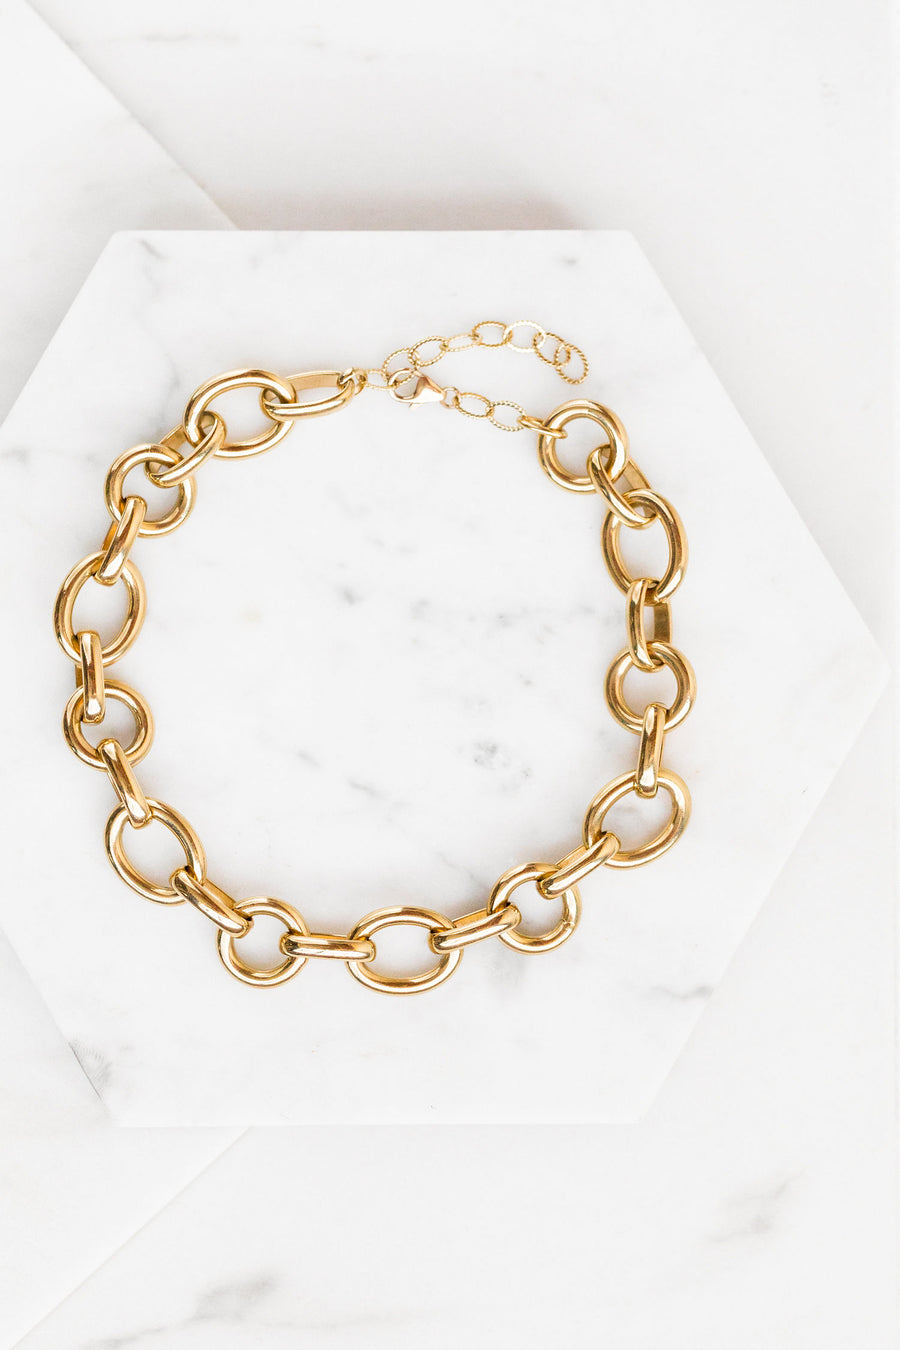 Find the perfect necklace you're looking for from Charme Silkiner! This beautiful 24K Gold Overlay Chain Necklace is simply perfect. Great for layering or wearing alone the Mirage Necklace is the perfect piece of unique jewelry that everyone should own.